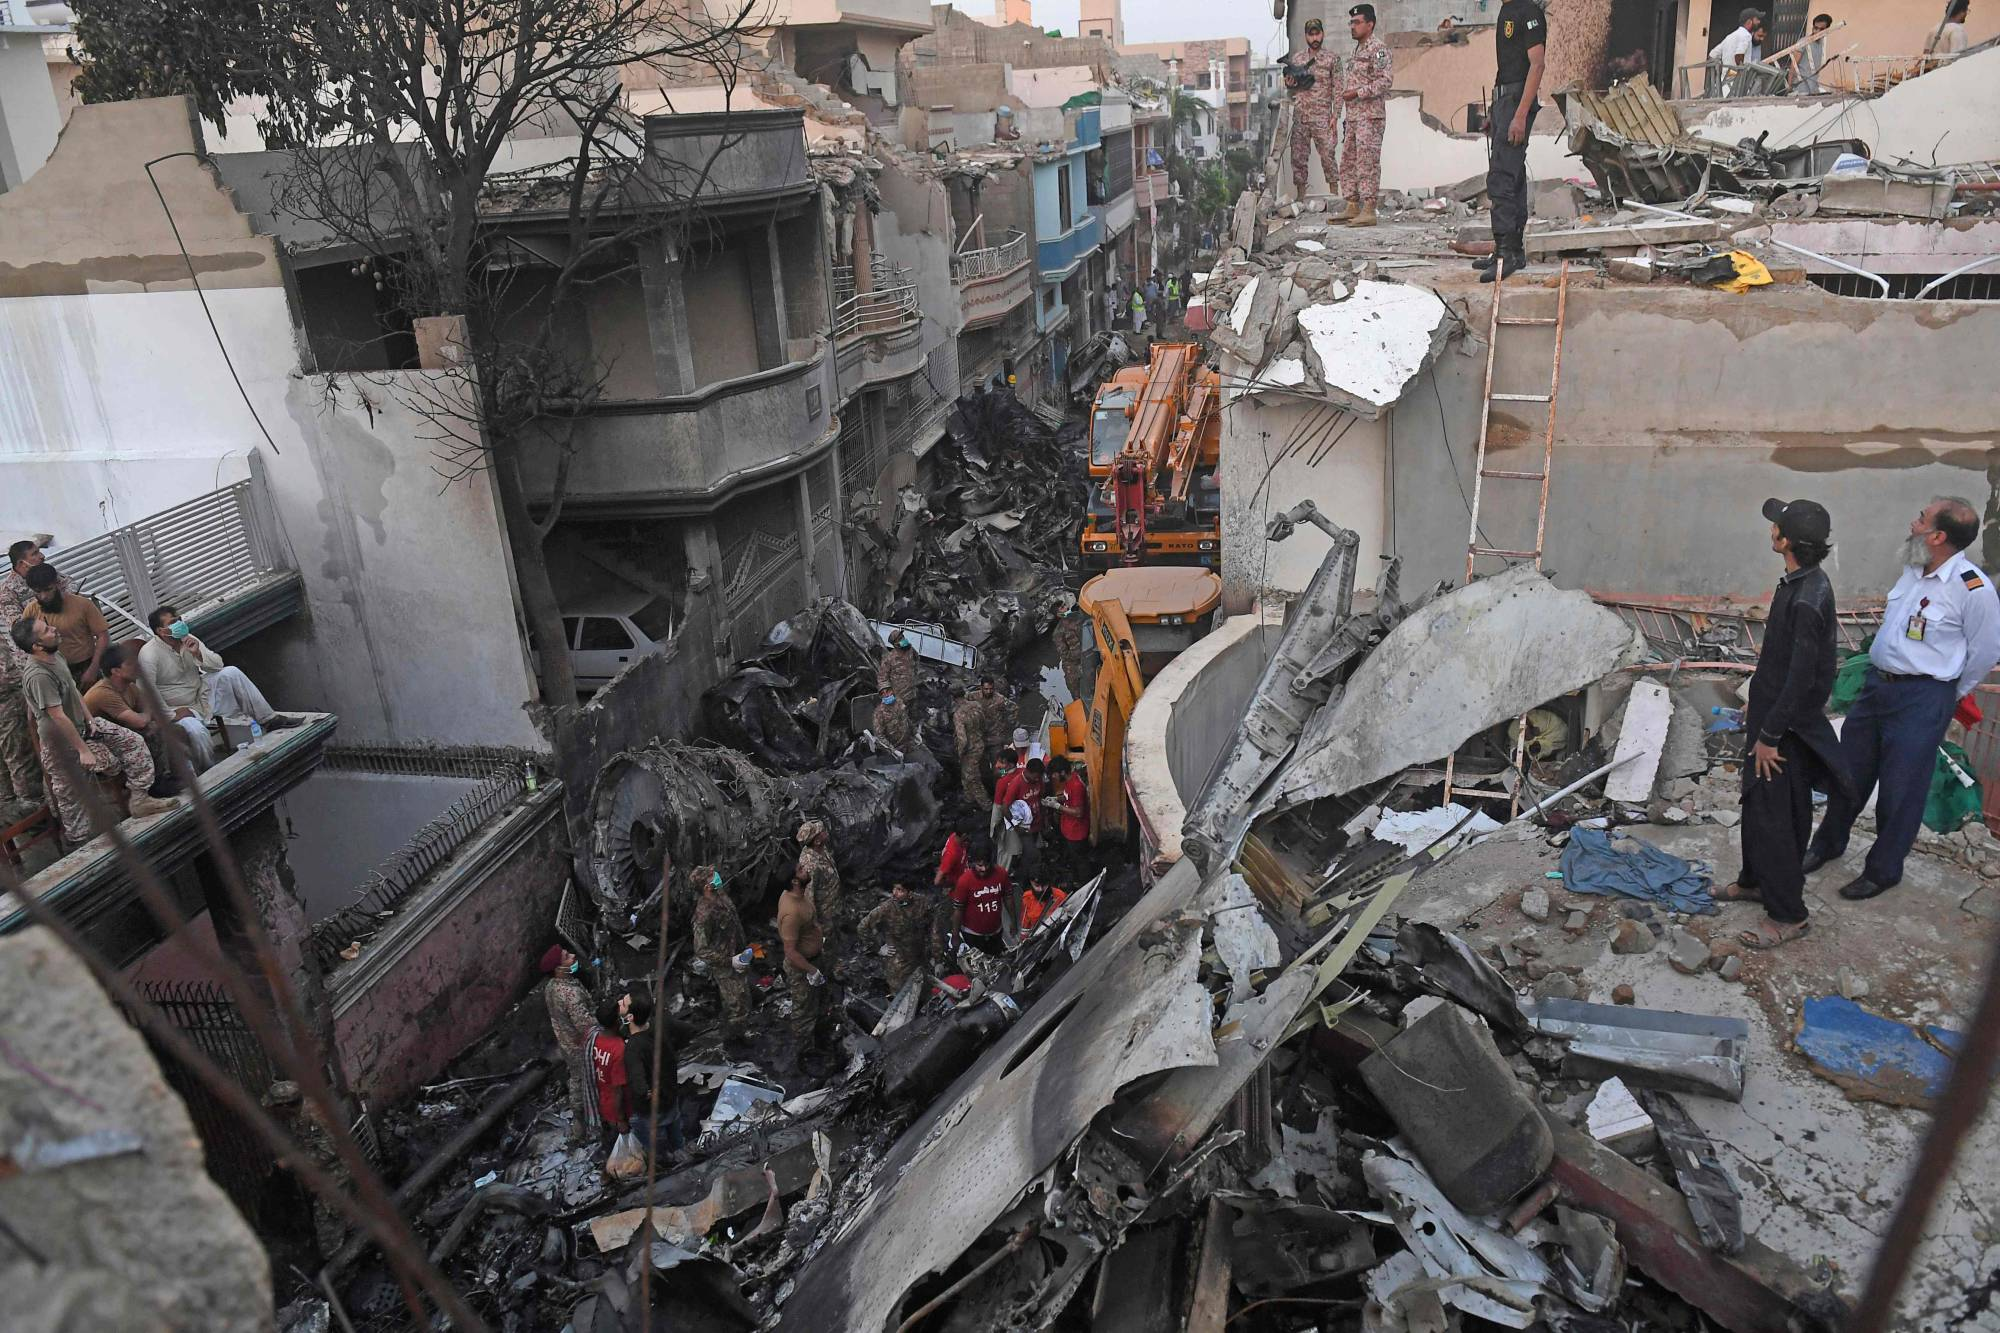 Security personnel search for victims in the wreckage of a Pakistan International Airlines aircraft after it crashed in a residential area of Karachi on Friday. | AFP-JIJI